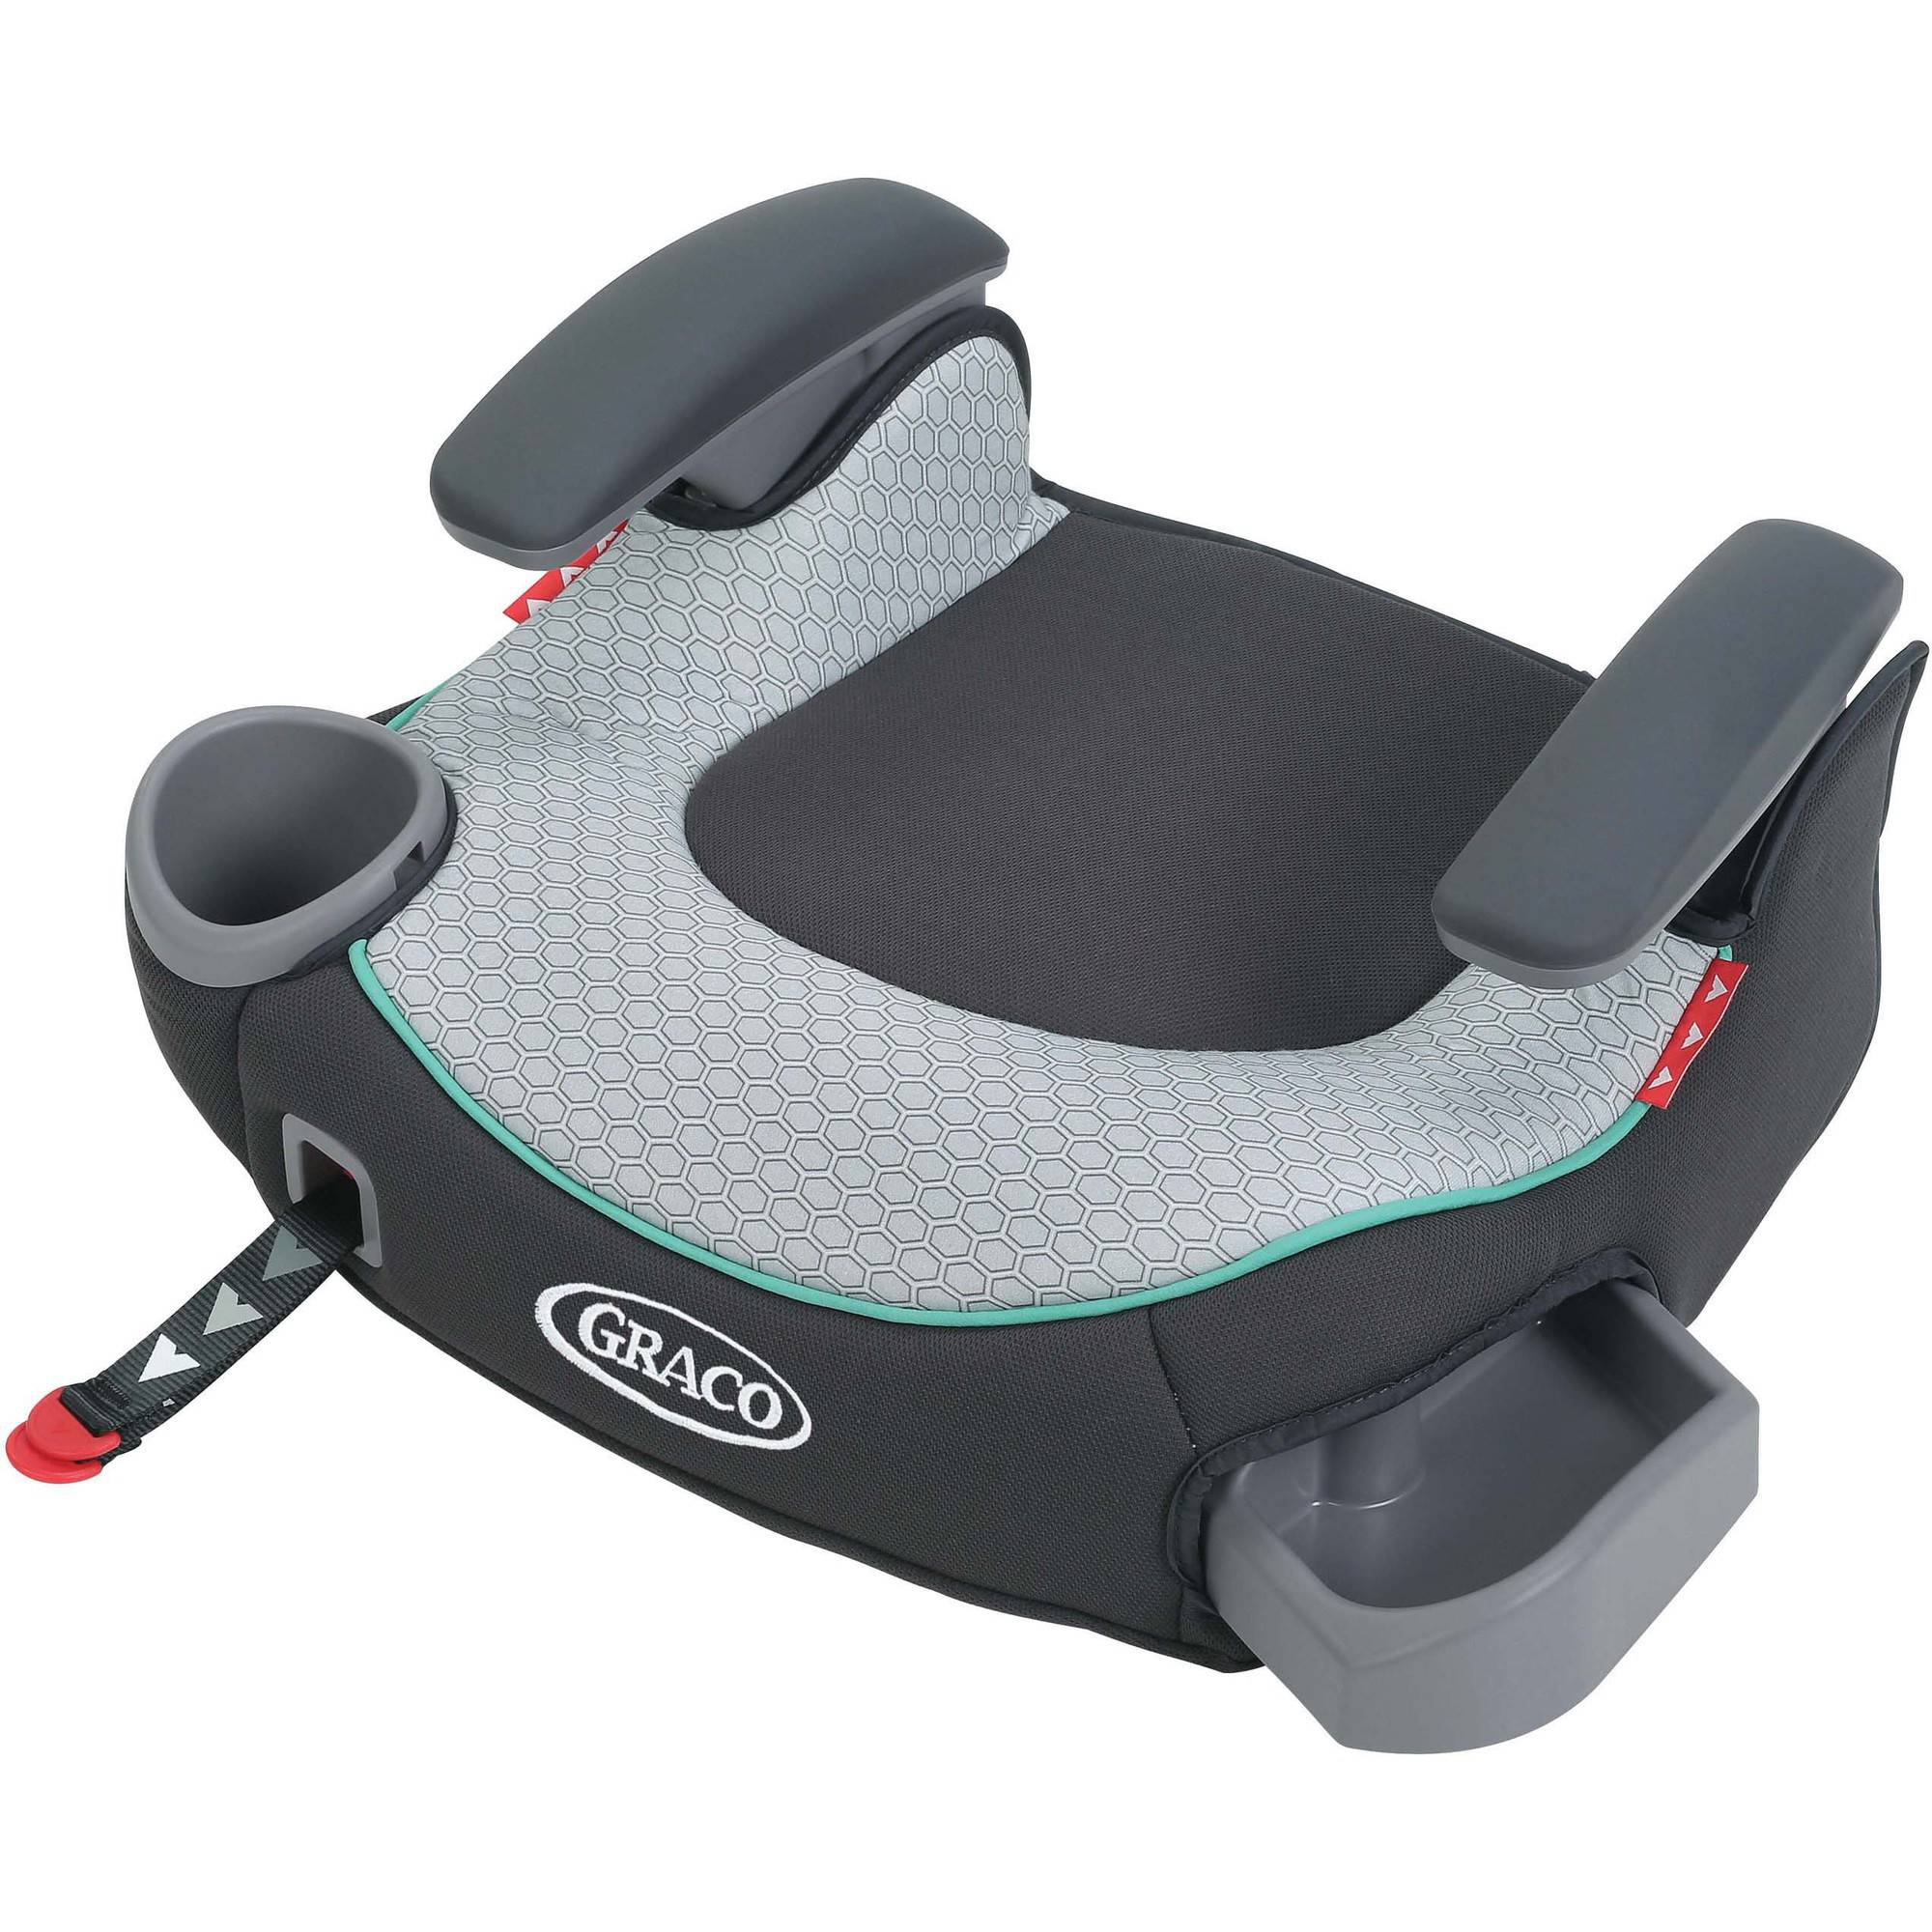 Graco Backless TurboBooster LX Booster Car Seat, Basin